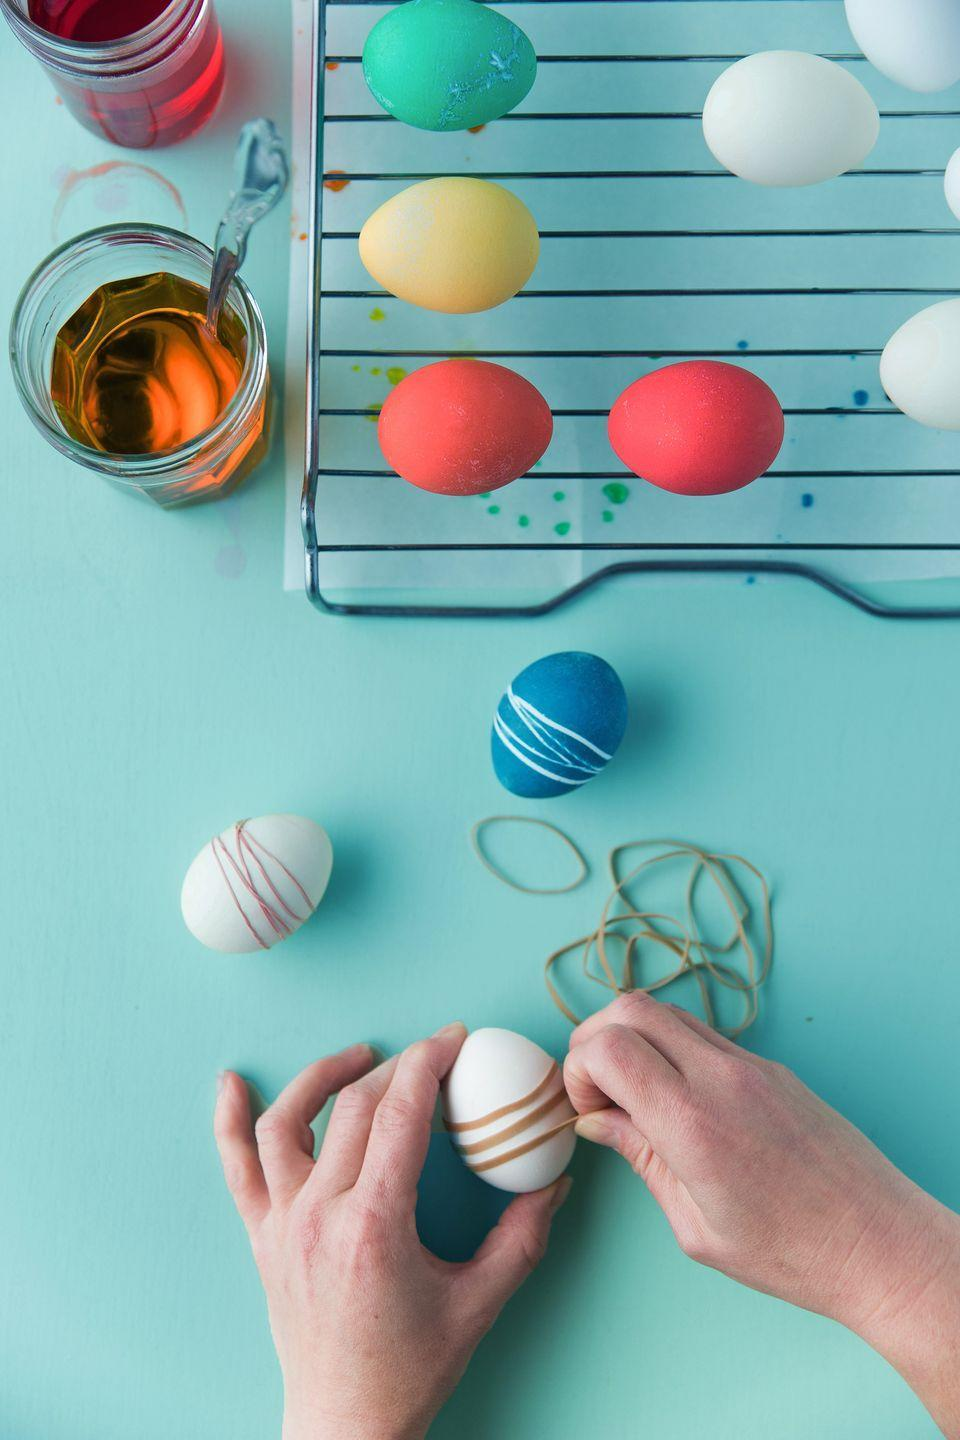 "<p>Wrap rubber bands tightly around the eggs before dyeing, or between coats of dye. To ensure a good seal, make sure they're snug—the tighter, the better. Wide, flat rubber bands will help you keep the rubber band from twisting too much.</p><p><a class=""link rapid-noclick-resp"" href=""https://www.amazon.com/AmazonBasics-Assorted-Color-Rubber-Bands/dp/B074B1KCXD/?tag=syn-yahoo-20&ascsubtag=%5Bartid%7C10050.g.26810304%5Bsrc%7Cyahoo-us"" rel=""nofollow noopener"" target=""_blank"" data-ylk=""slk:SHOP RUBBER BANDS"">SHOP RUBBER BANDS</a></p>"